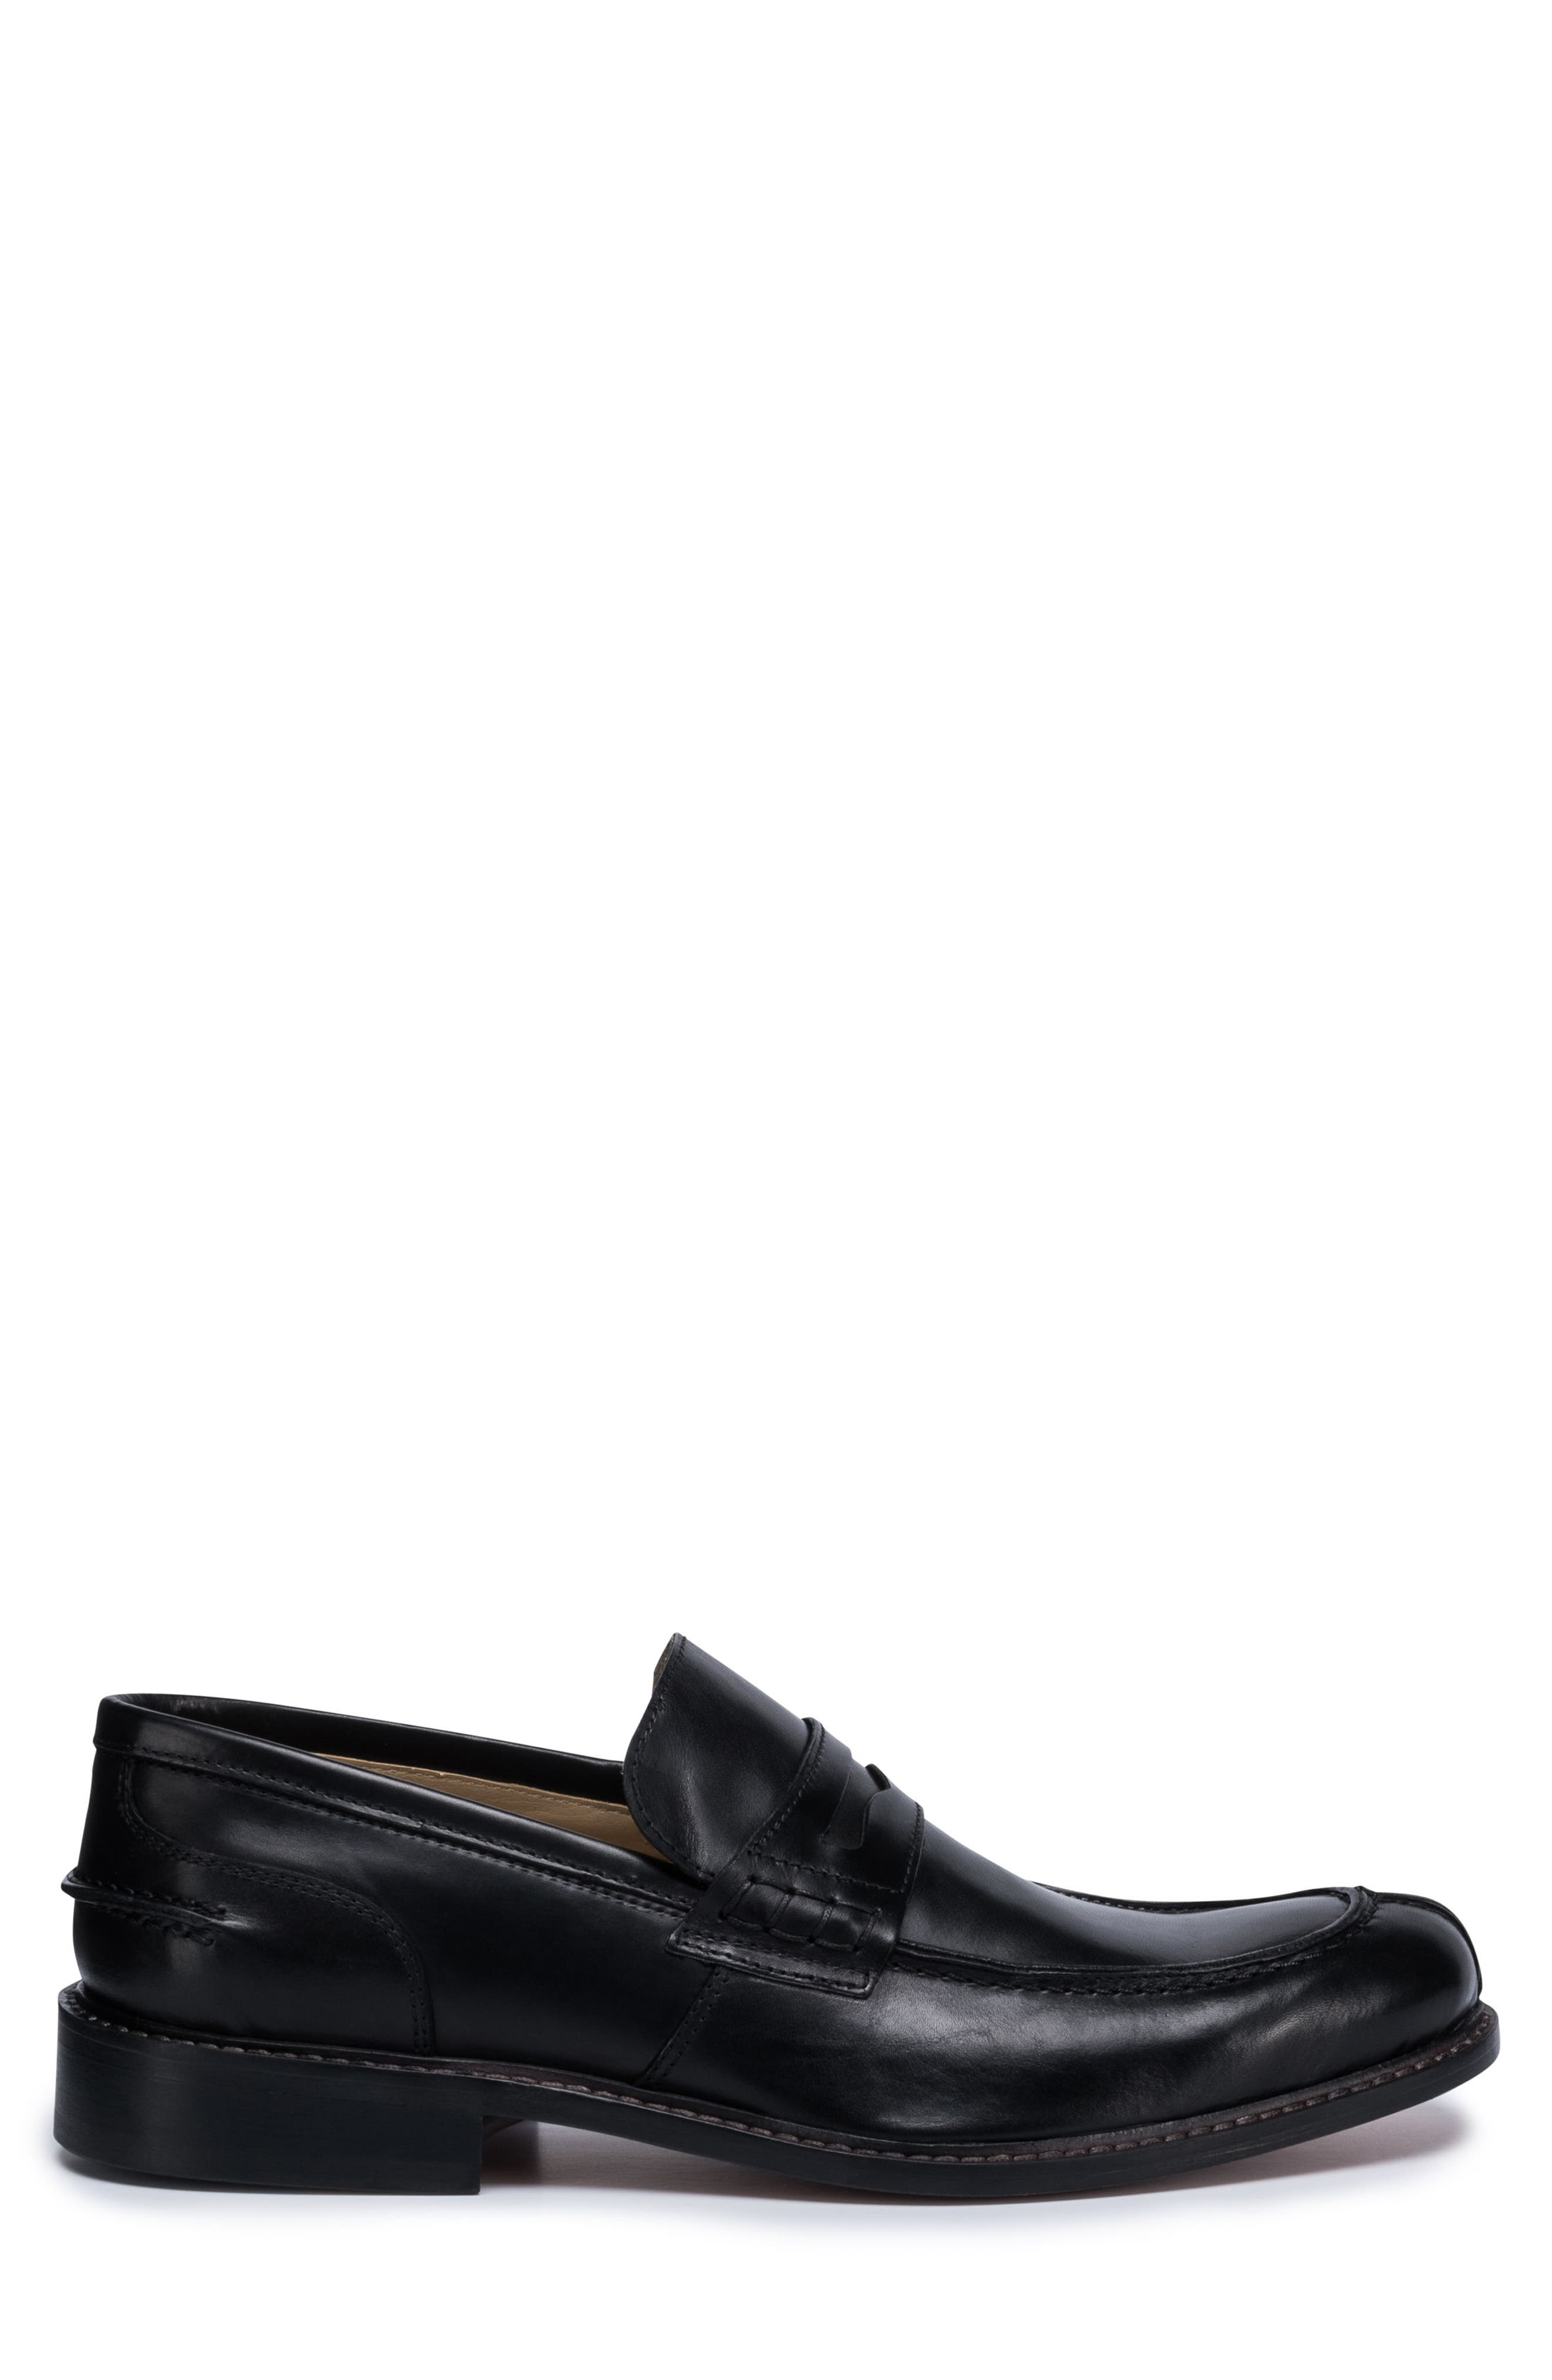 Apron Toe Penny Loafer,                             Alternate thumbnail 3, color,                             Nero Leather